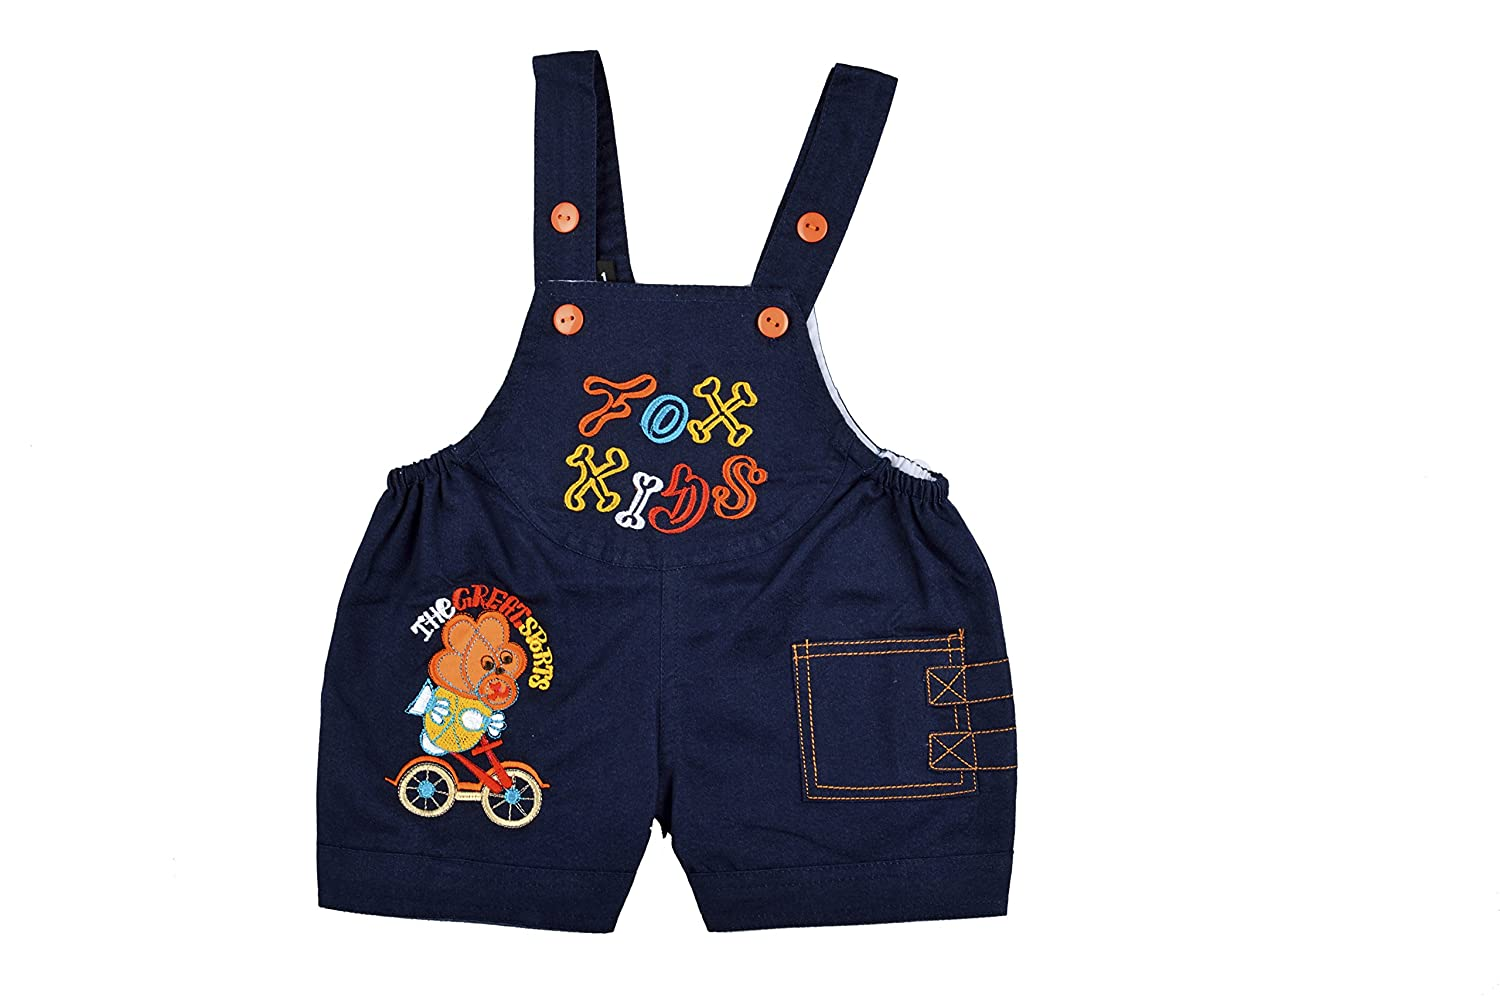 20e881d5b38e9 Kuchipoo Kid's Denim Dungaree Set: Amazon.in: Clothing & Accessories